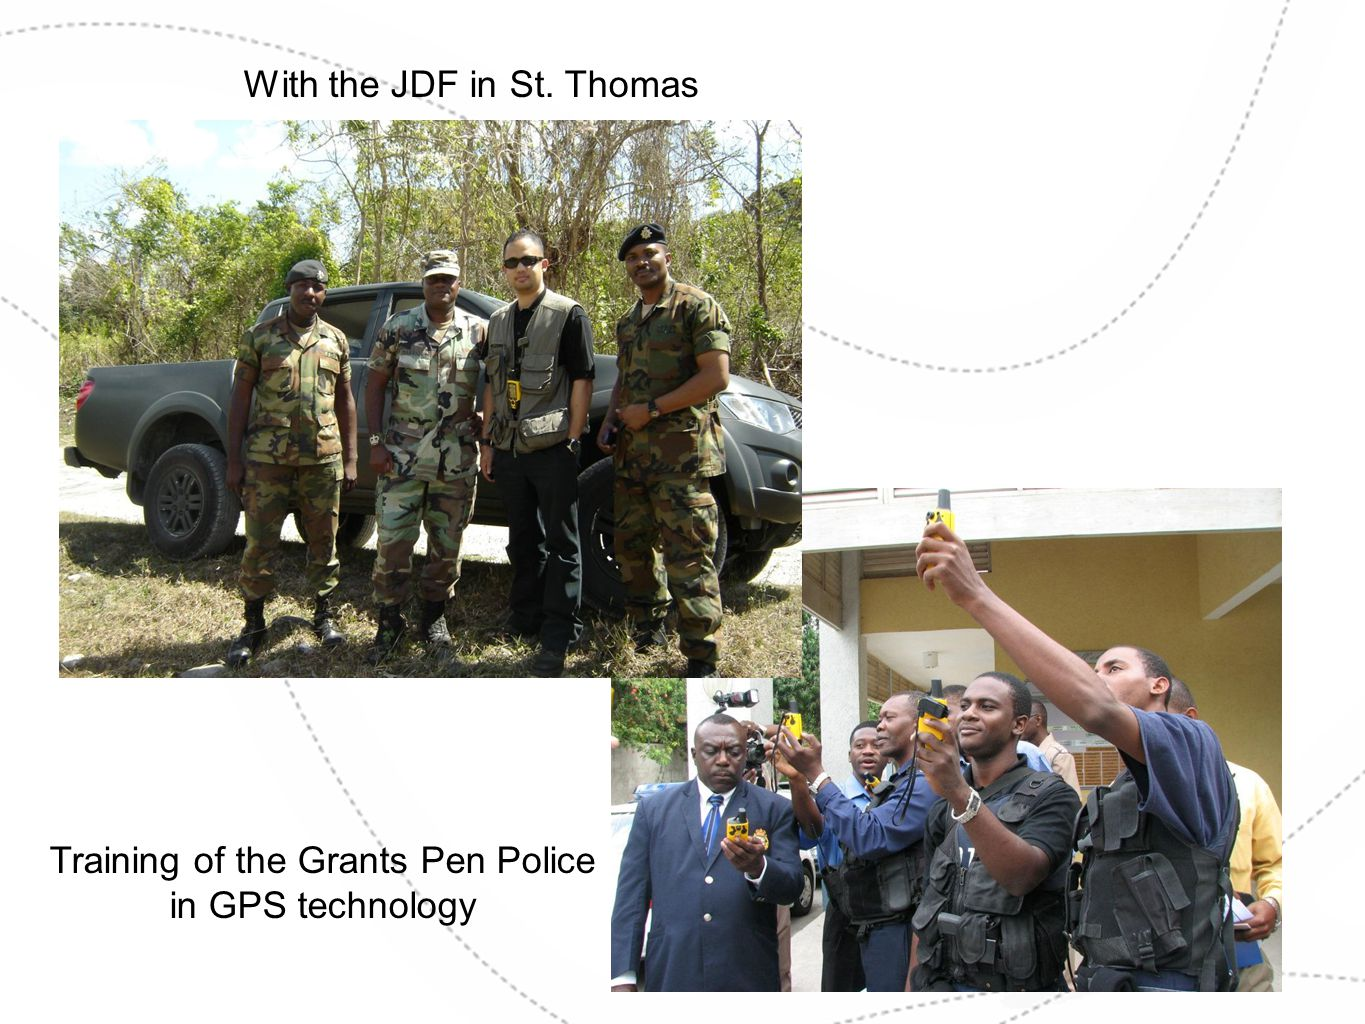 With the JDF in St. Thomas Training of the Grants Pen Police in GPS technology